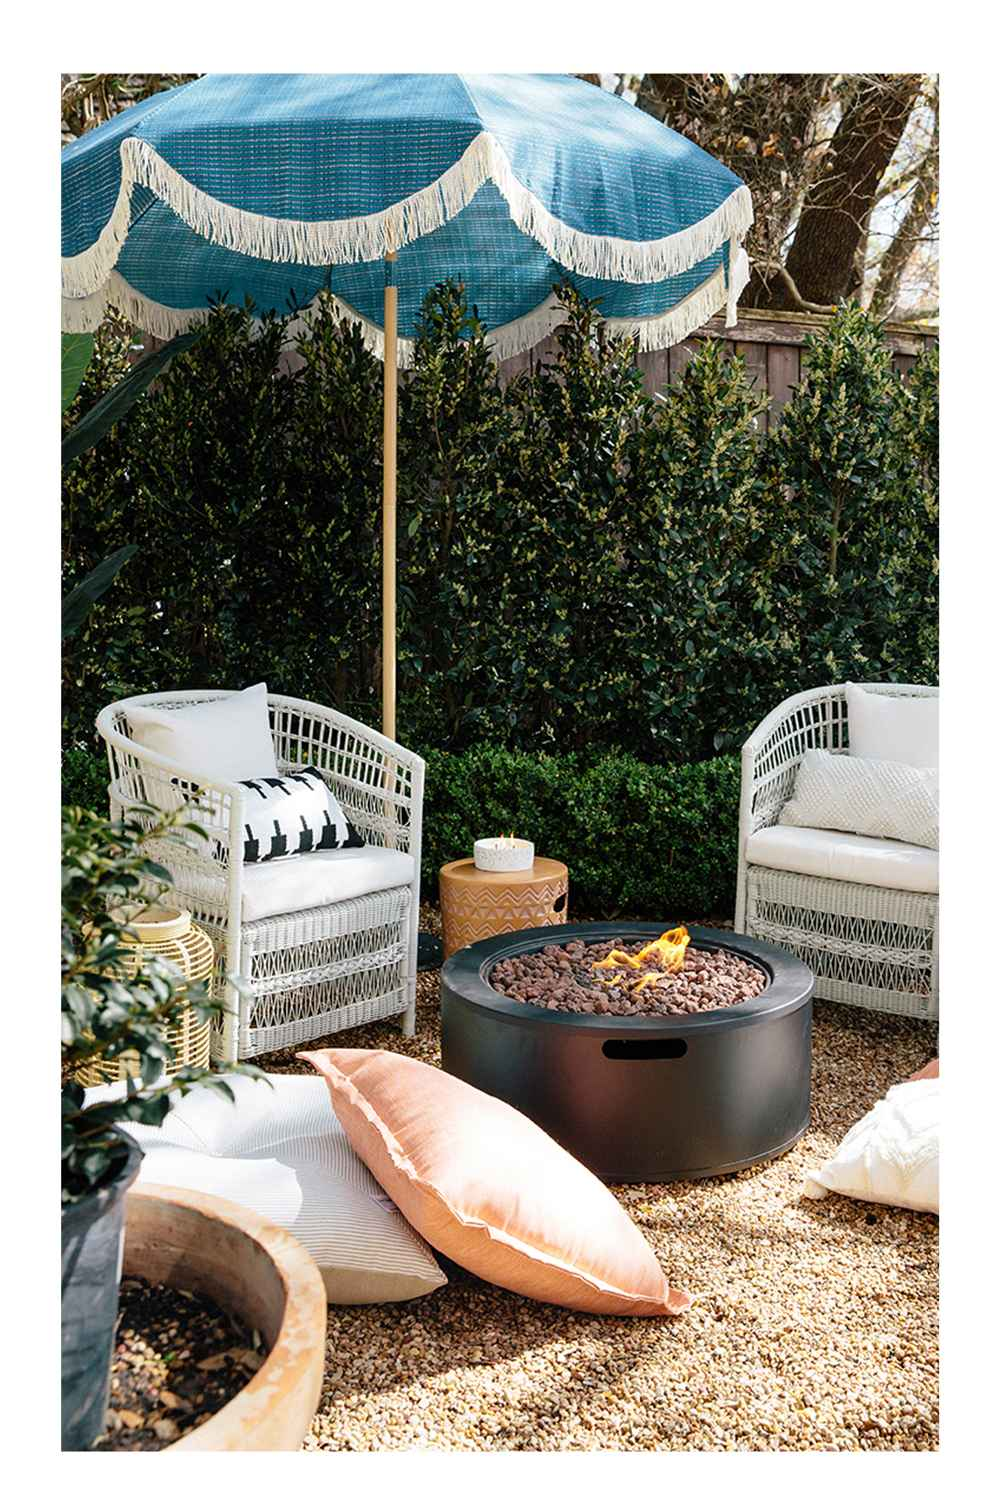 """7.2' Round Fringed Patio Umbrella Teal - Opalhouse™, 5' x 7' Outdoor Rug Tufted Cream - Opalhouse™, Reversible Floor Cushion DuraSeason Fabric™ Tan/Veranda Stripe - Threshold™, Throw Pillow Black Pyramid - Project 62™, 8.8"""" Round Resin Outdoor Lantern Natural - Threshold™, 18"""" Rattan Flameless Candle Outdoor Lantern Beige - Threshold™, Mulberry 2pk Patio Club Chairs - White - Threshold™, 24"""" Decorative Throw Pillow DuraSeason Fabric™ Flanged Melon - Threshold™, 36"""" Round Pipestone Outdoor LP Fire Pit - Project 62™, 14.5oz Terrazzo Candle Green - Project 62™, Global Terracotta Patio Accent Table - Opalhouse™"""